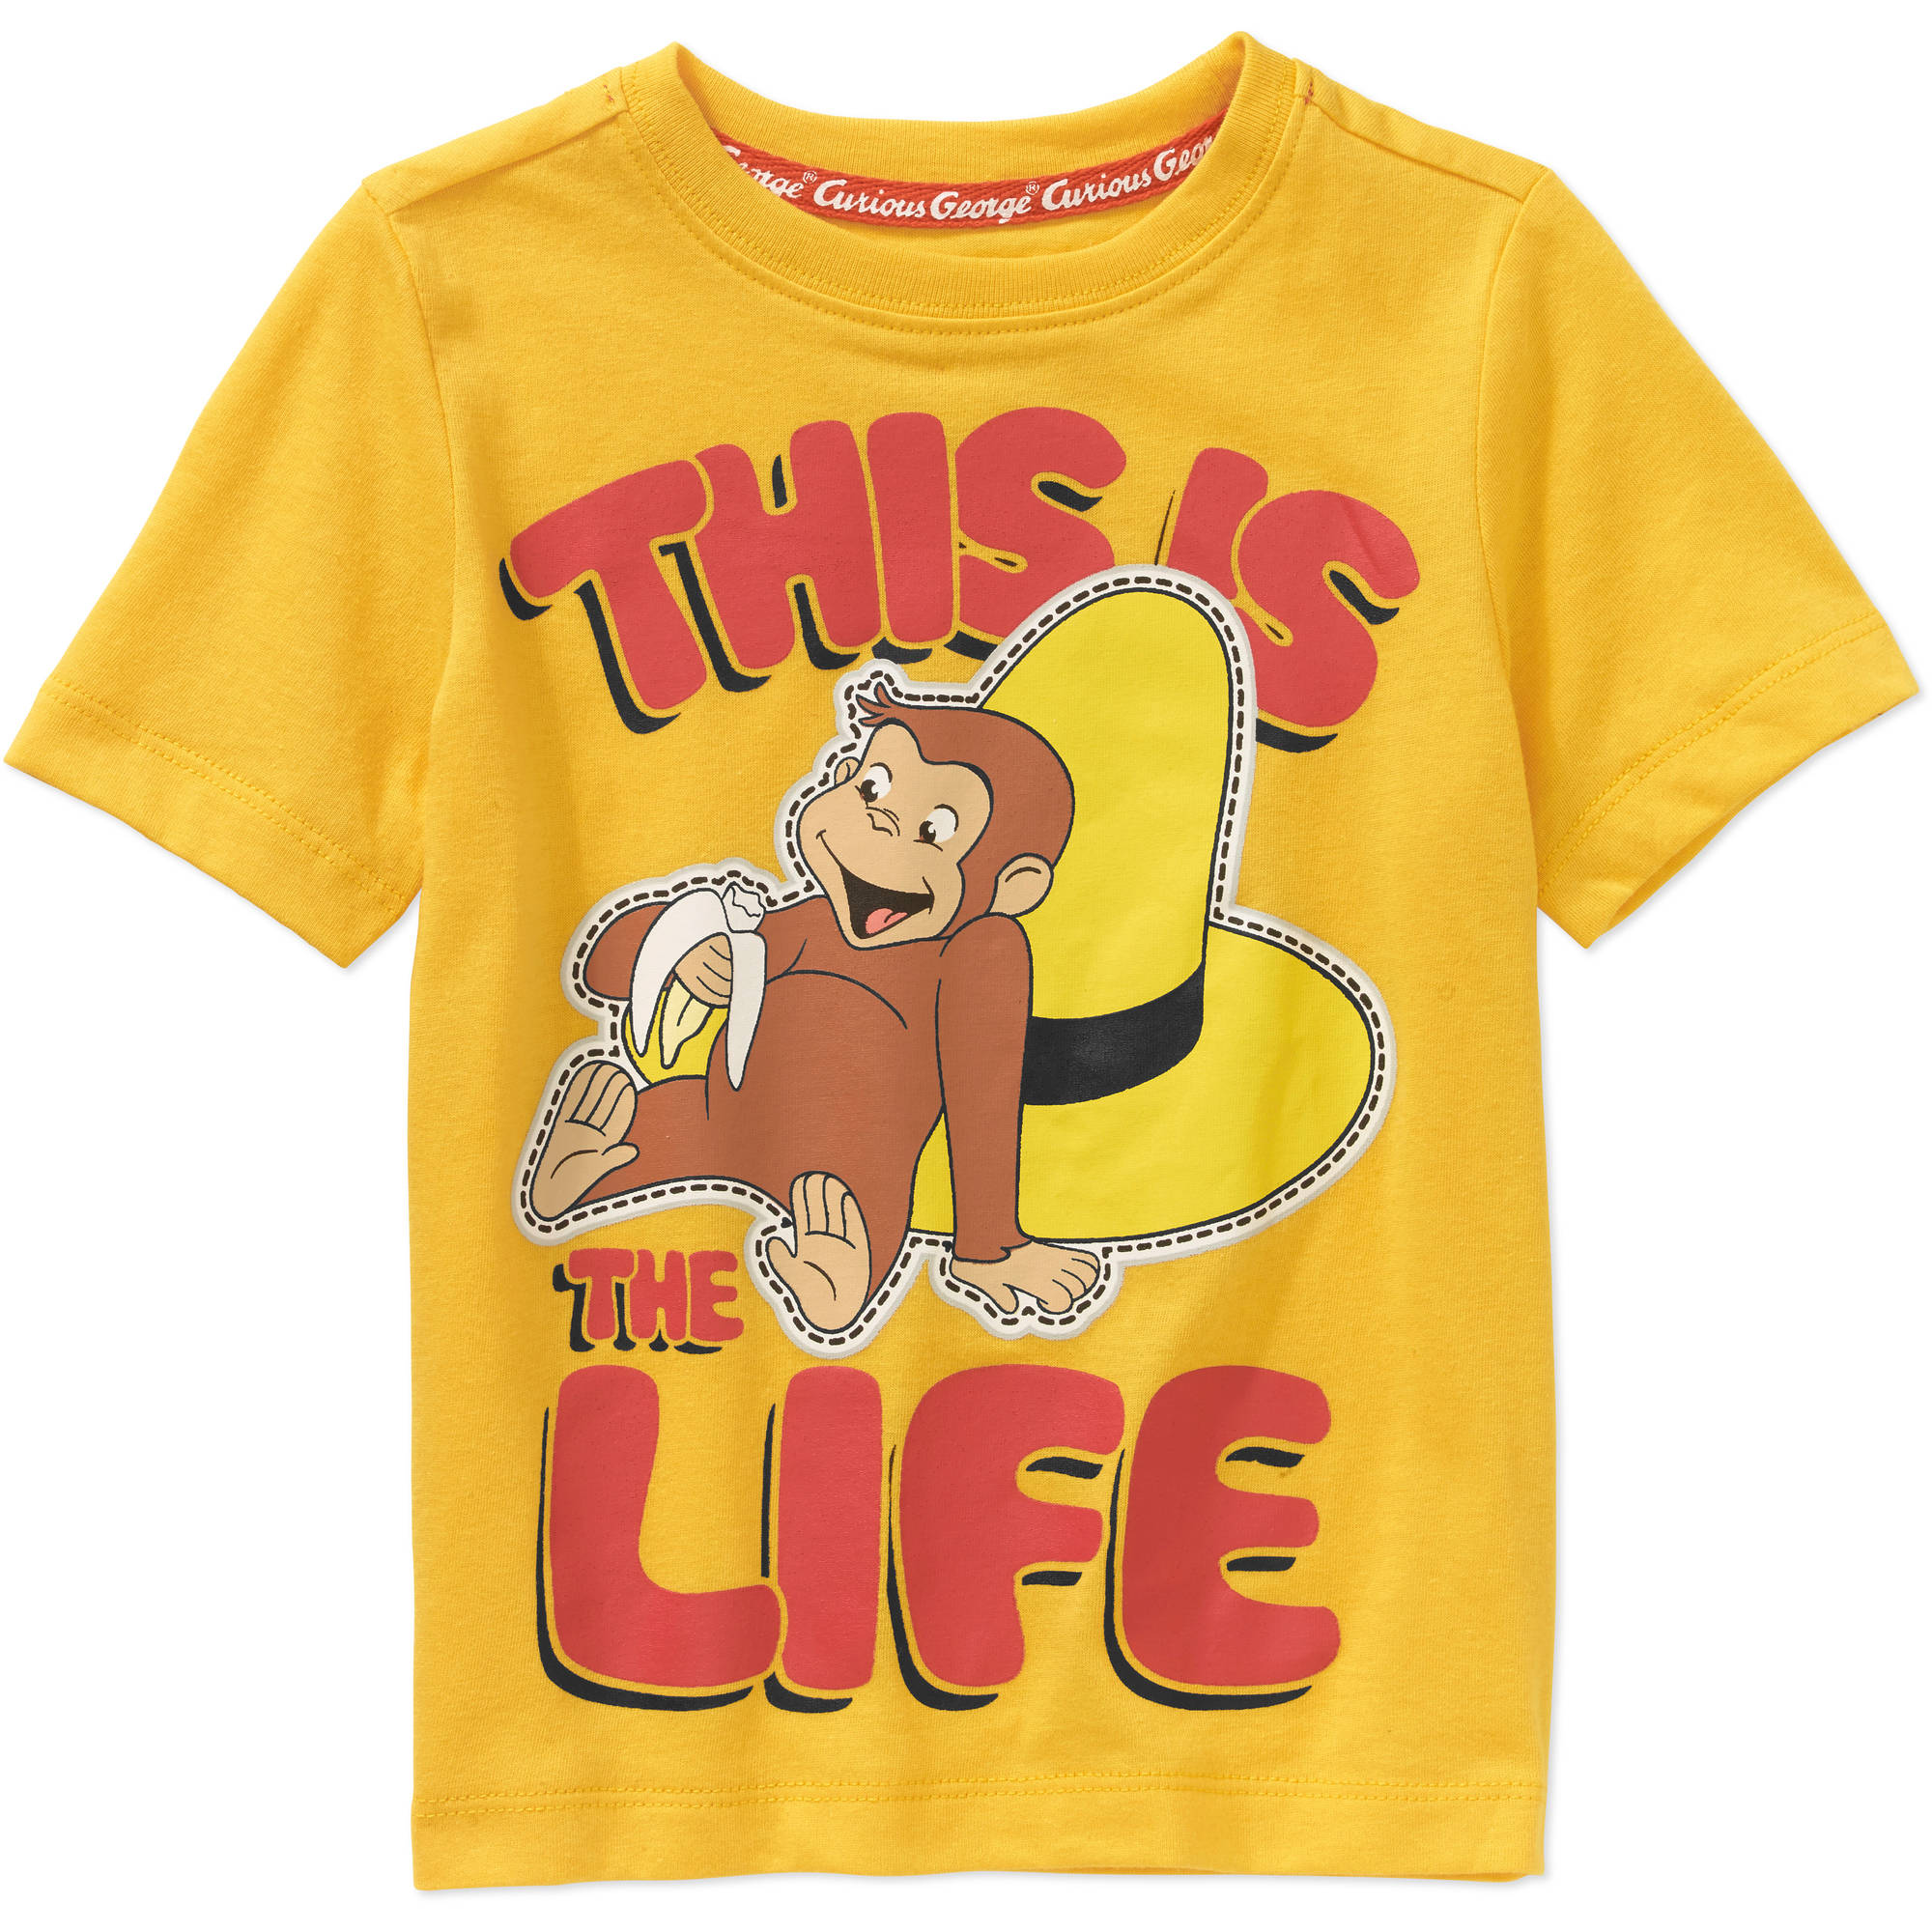 Curious George Toddler Boys' This Is The Life Graphic Tee Shirt